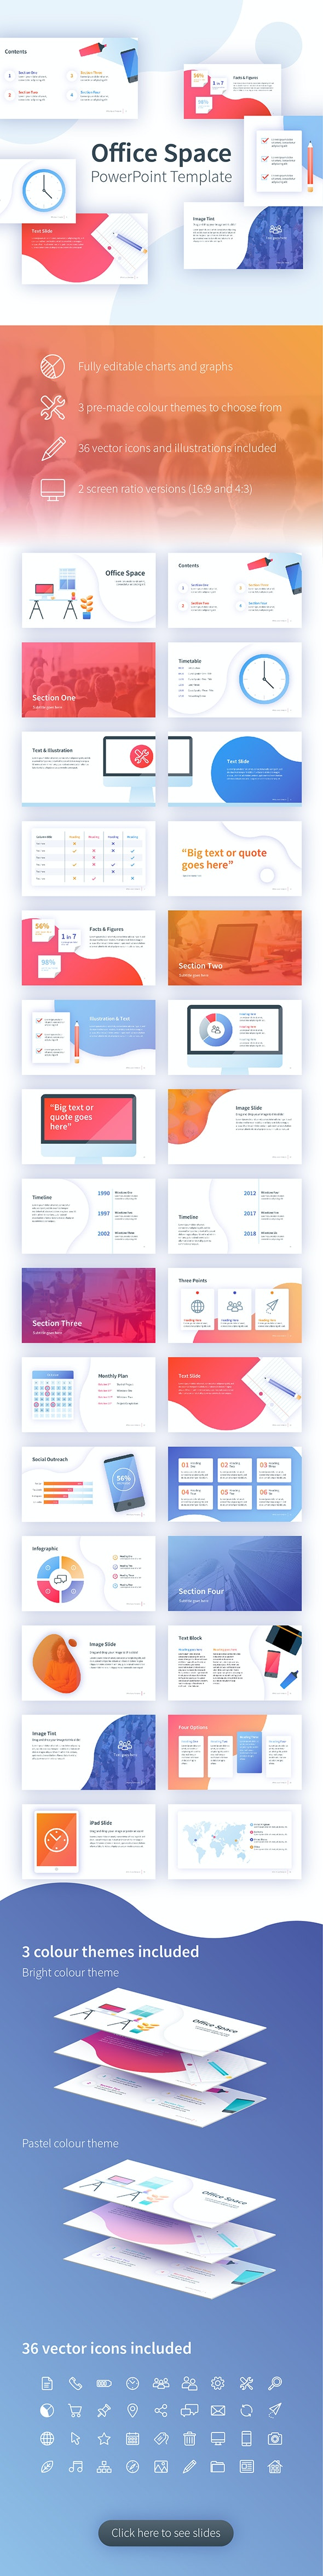 Office Space PowerPoint Template - Creative PowerPoint Templates